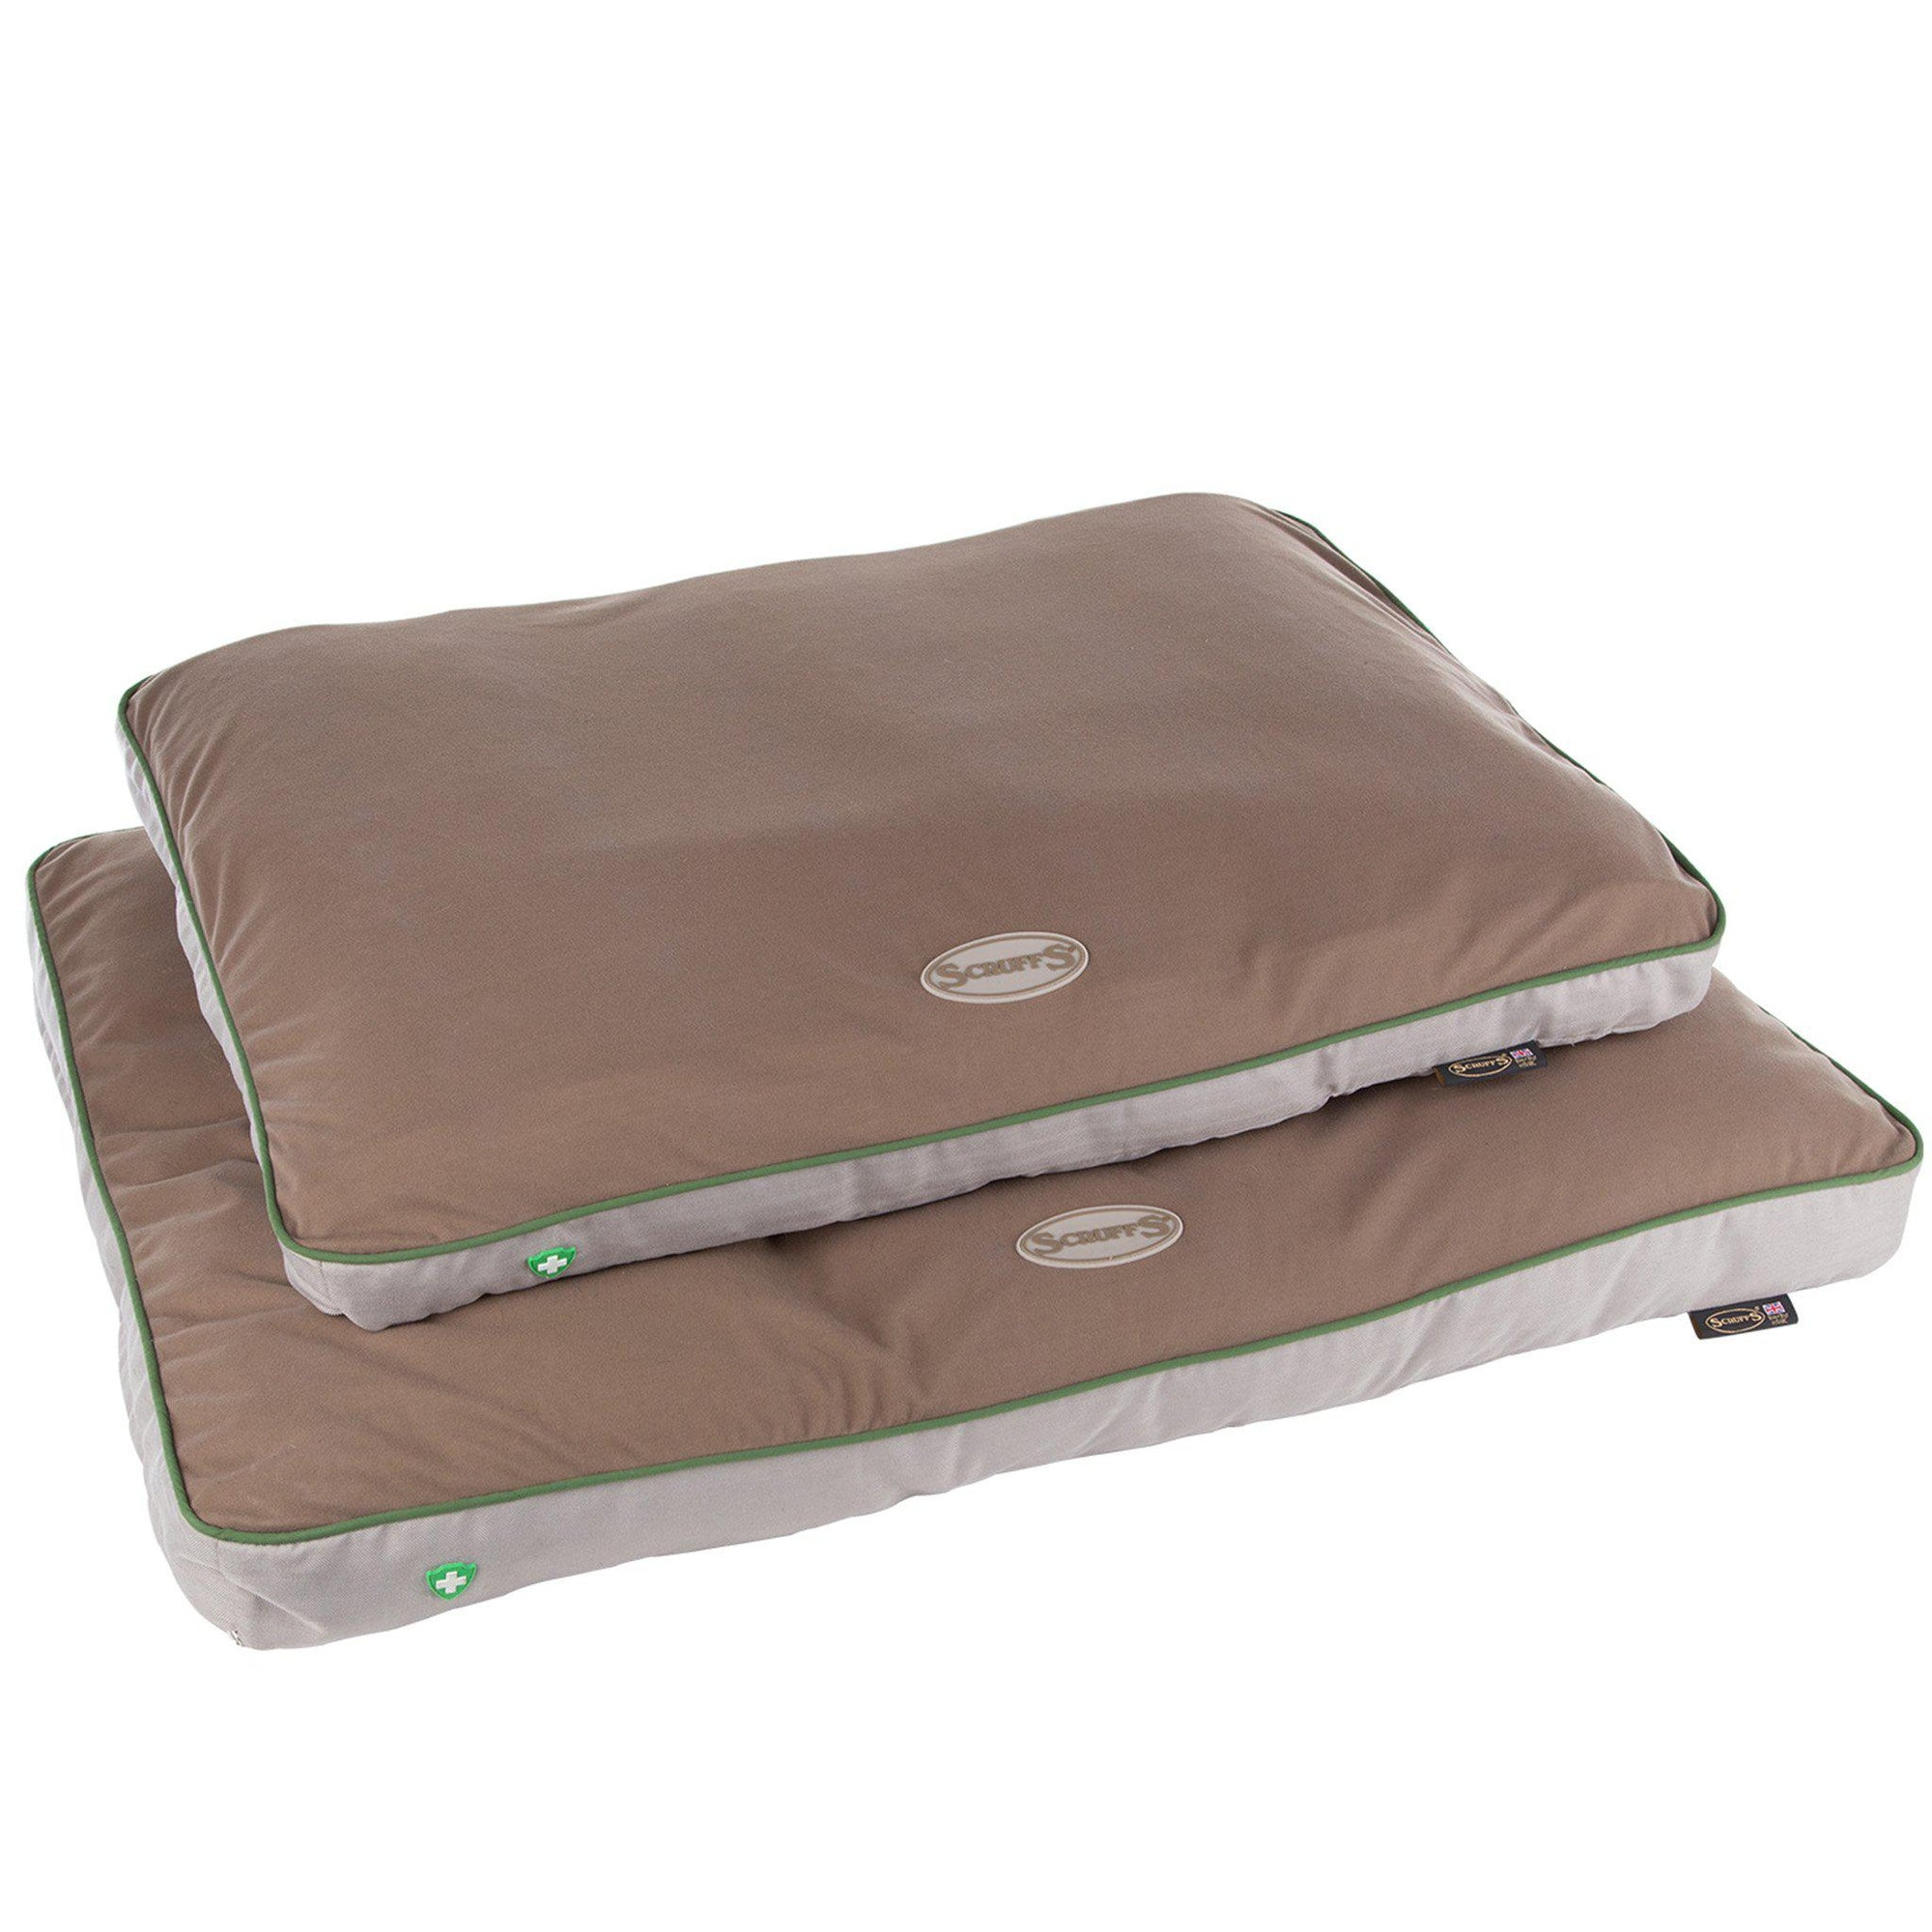 Scruffs - Insect Shield® Dog Mattress - ComfyPet Products